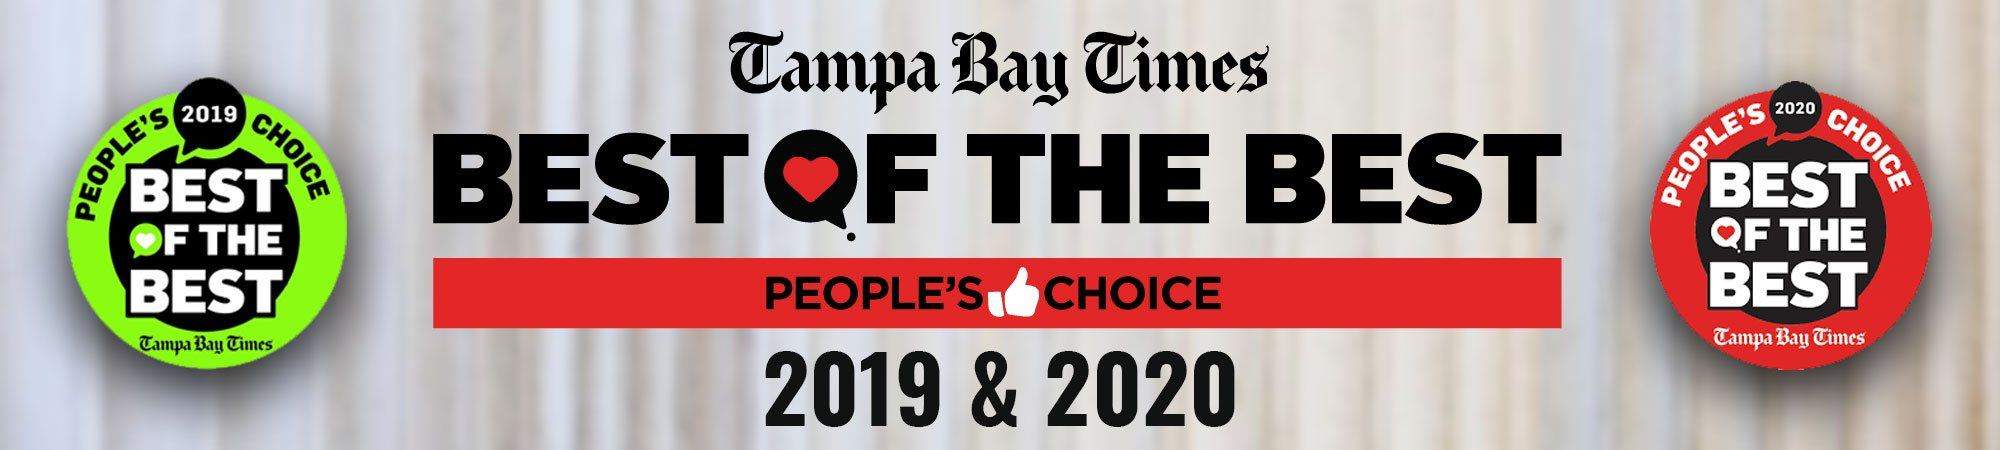 tampa-bay-times-best-of-the-bay-best-attorney-law-firm-2020